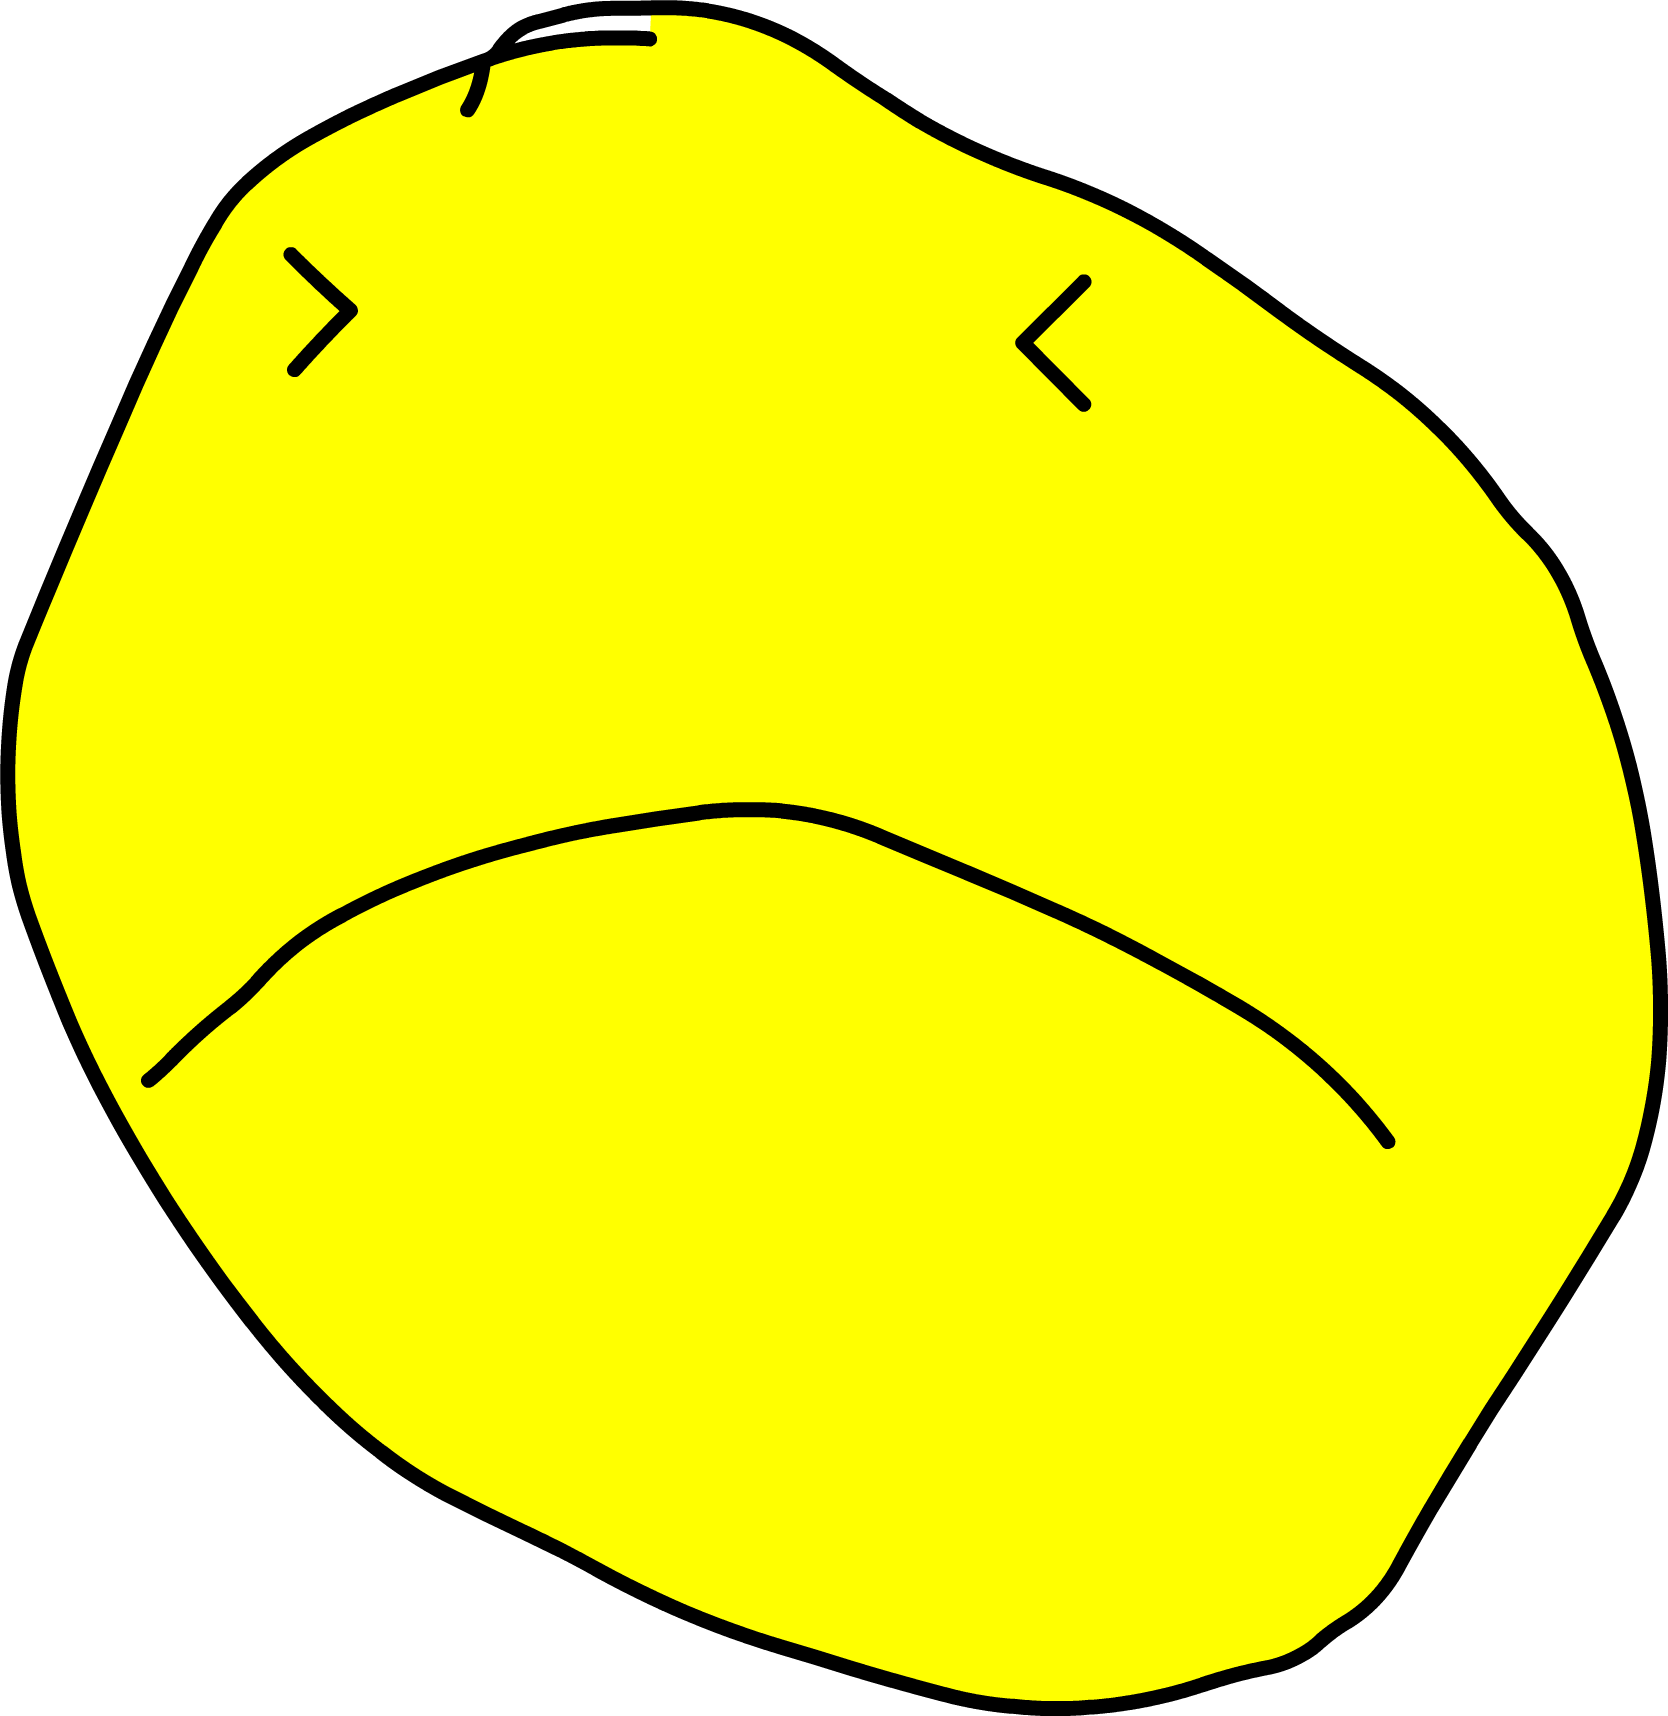 Yellow Face Omg - Bfb Yellow Face Body | Full Size PNG Download